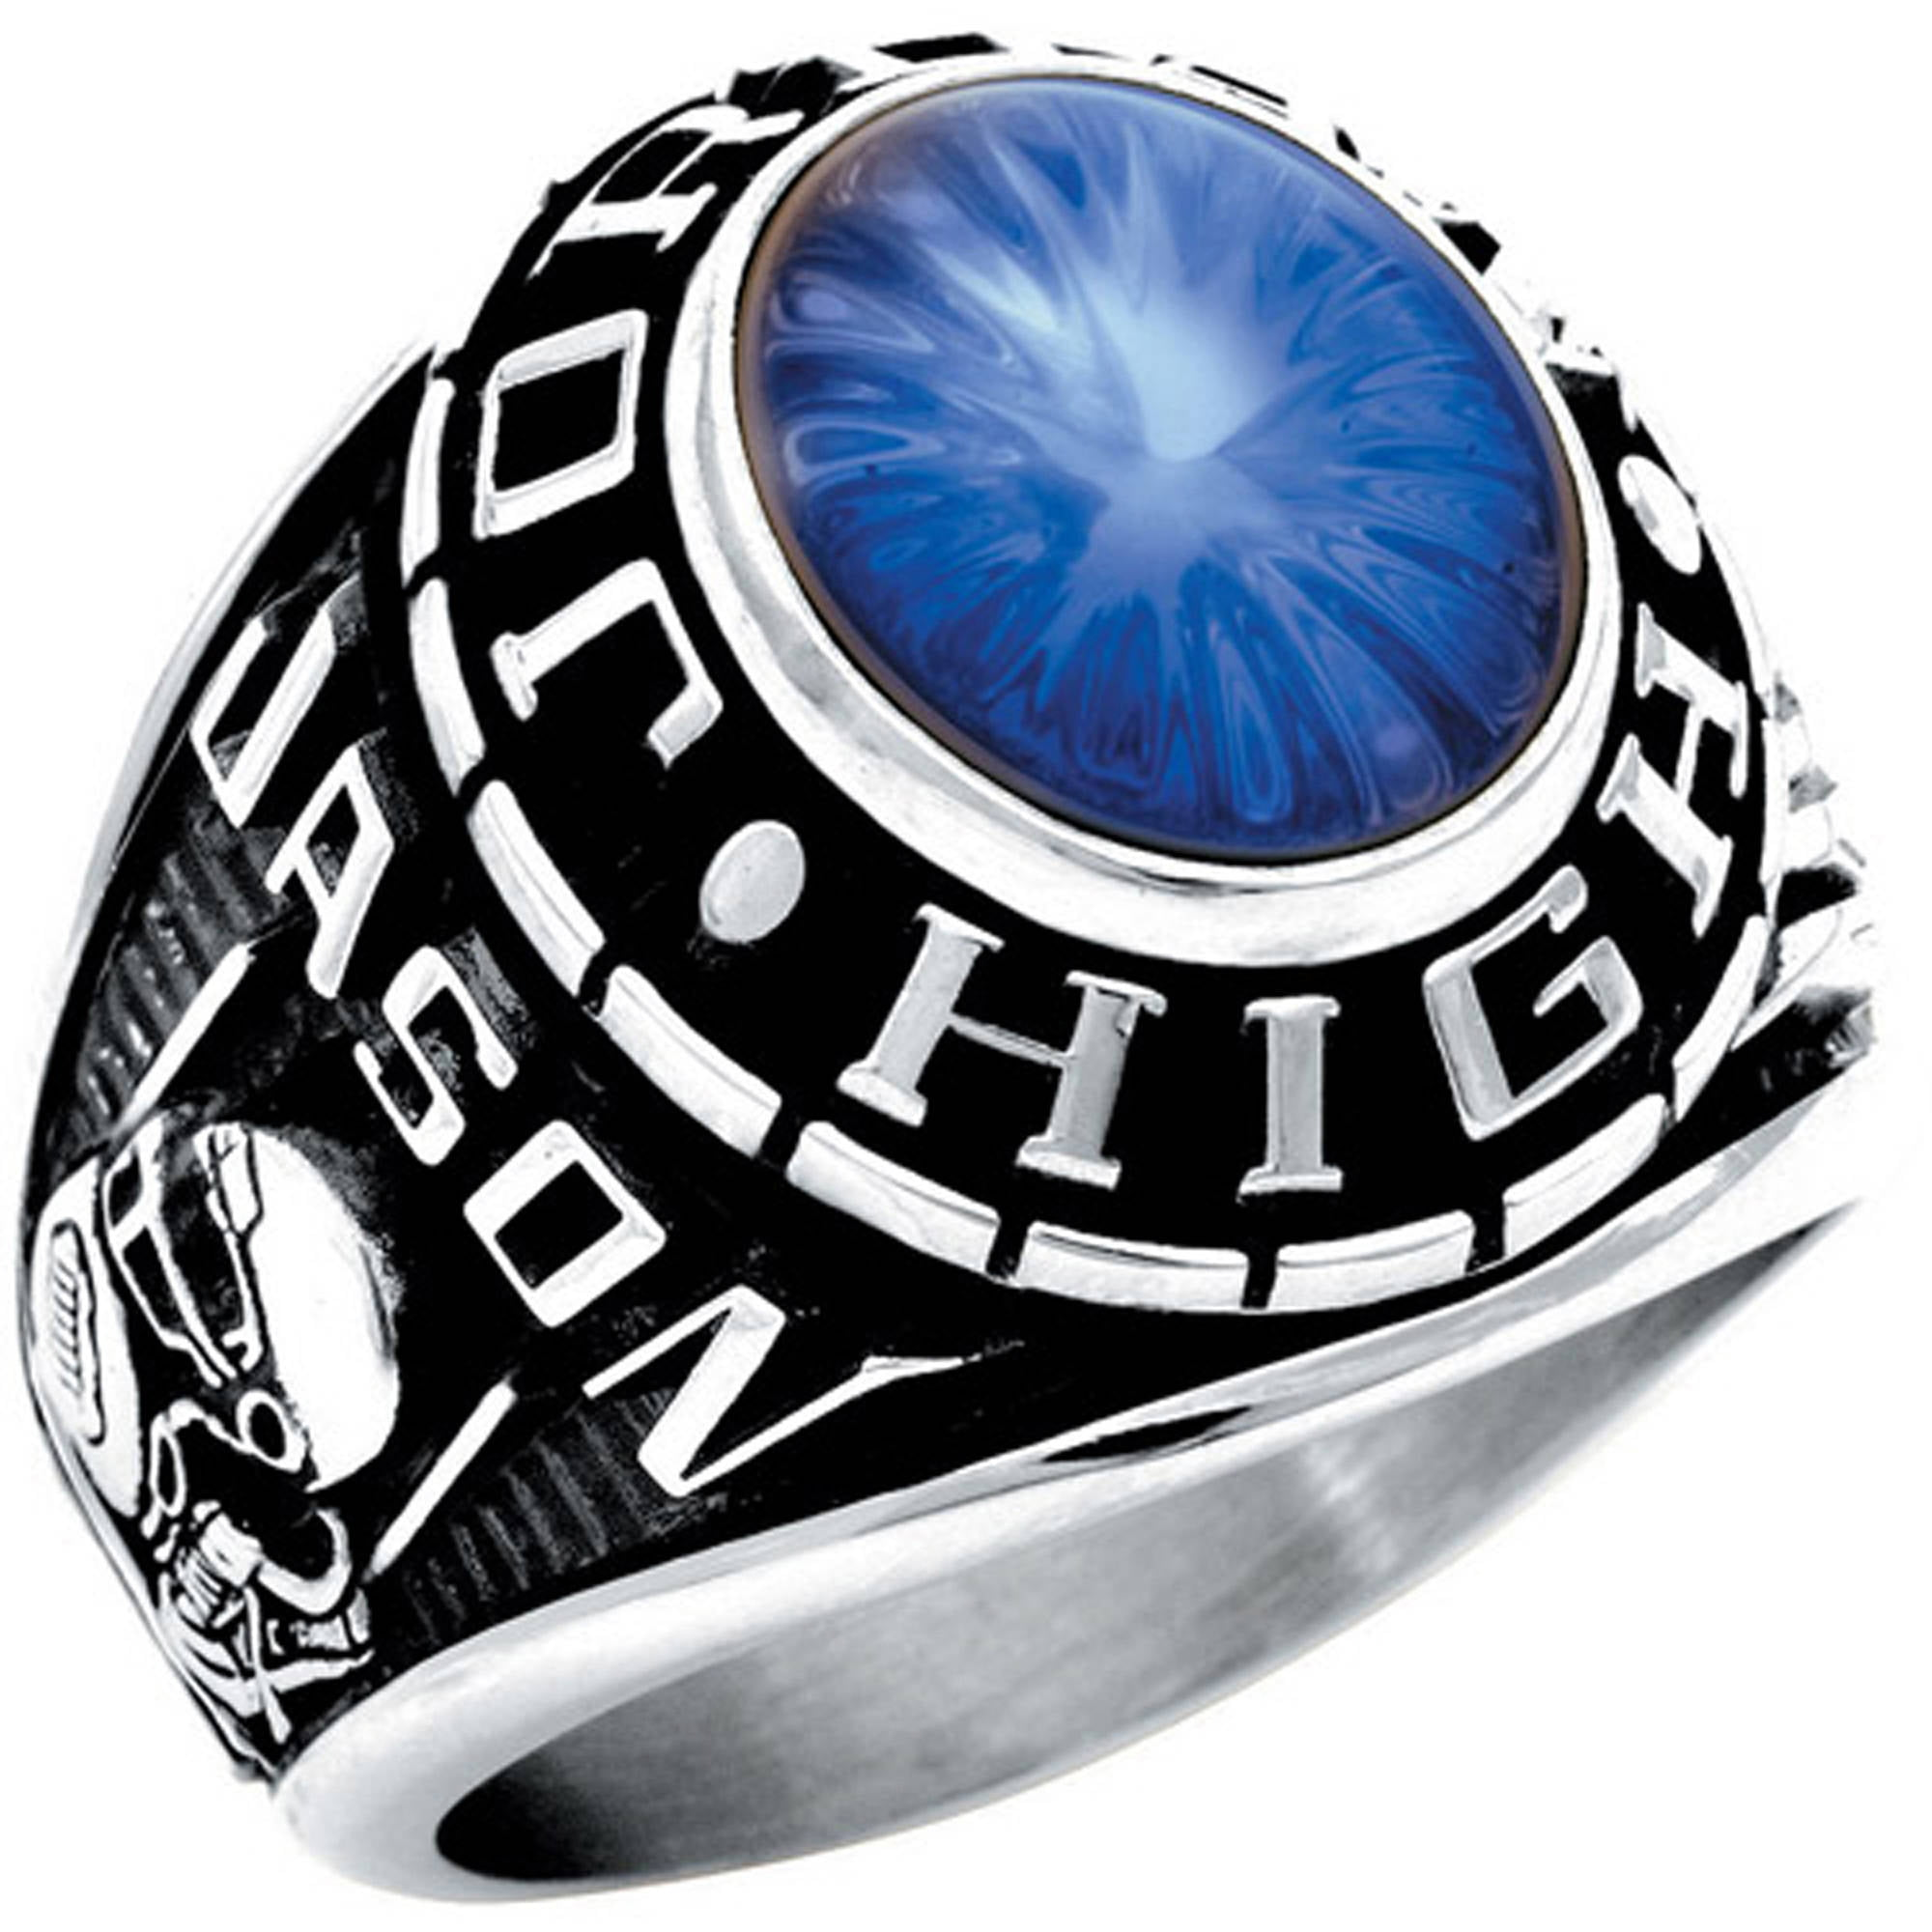 rings quickly state approaching ringimg texan ring tarleton ceremony school official news service medical university